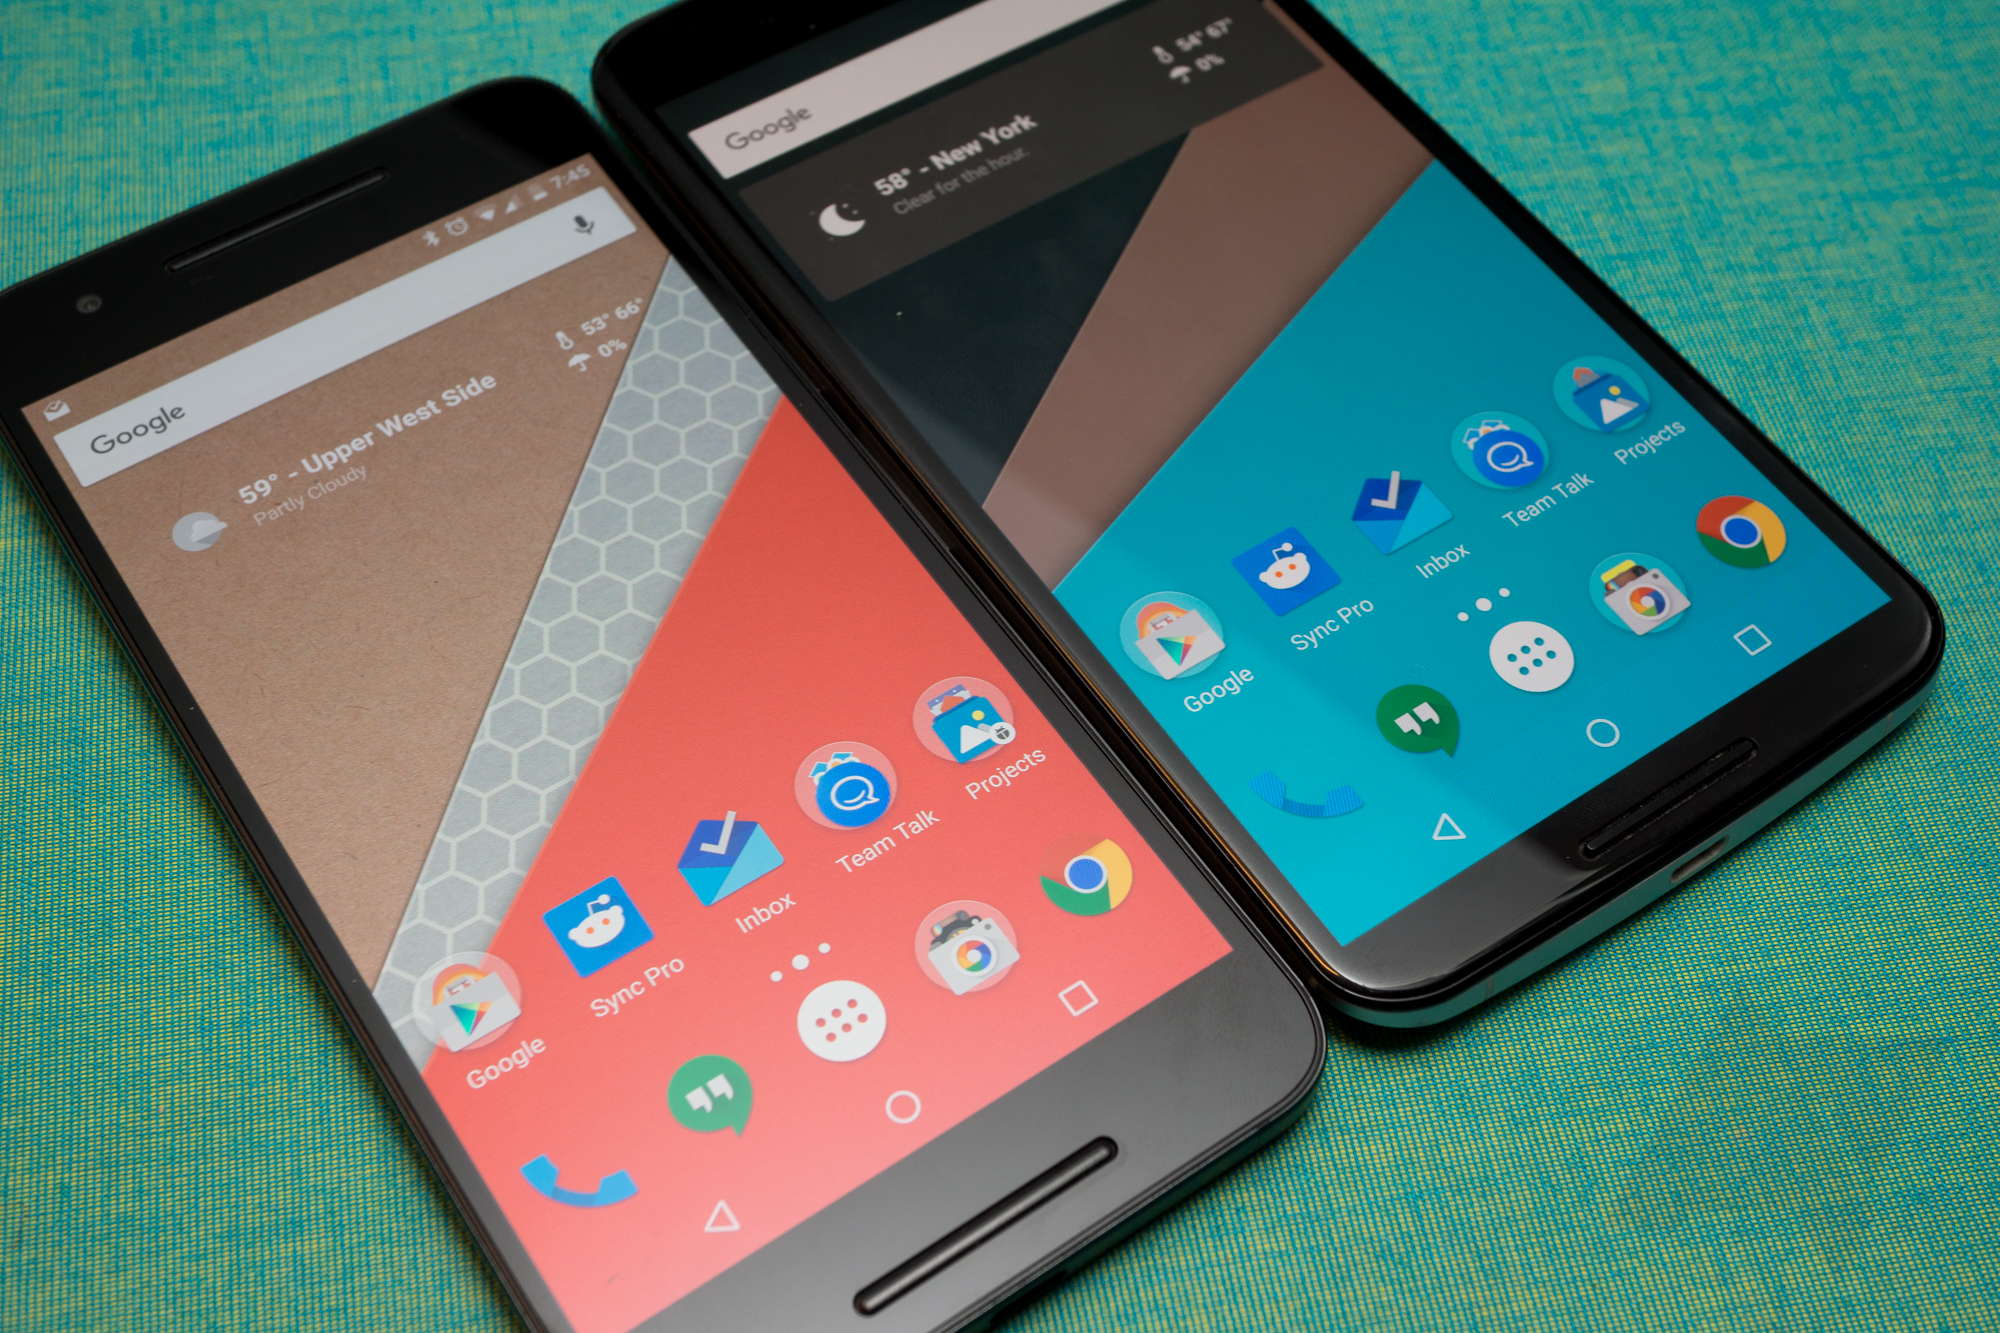 Phone 7 Android Phone nexus 7 archives android police news apps games google promised monthly security updates for devices and so far the company has delivered its november 2nd wer